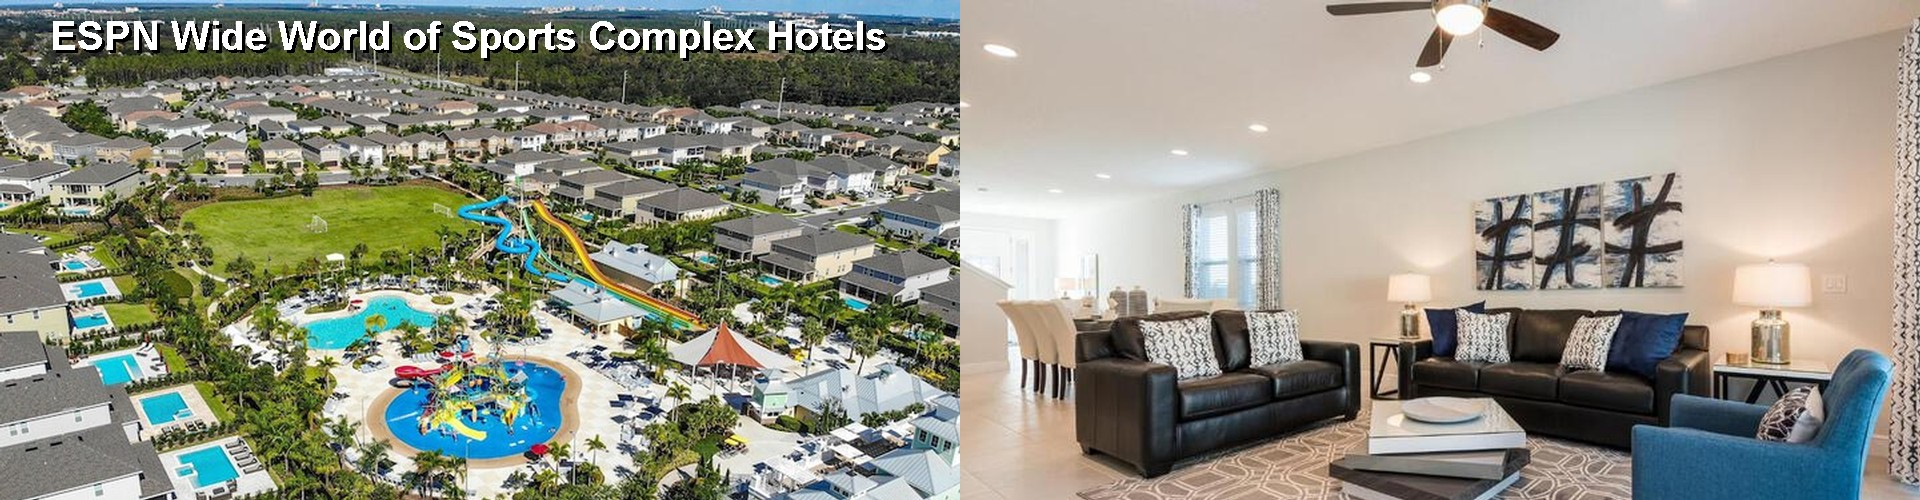 5 Best Hotels Near Disney Espn Wide World Of Sports Complex